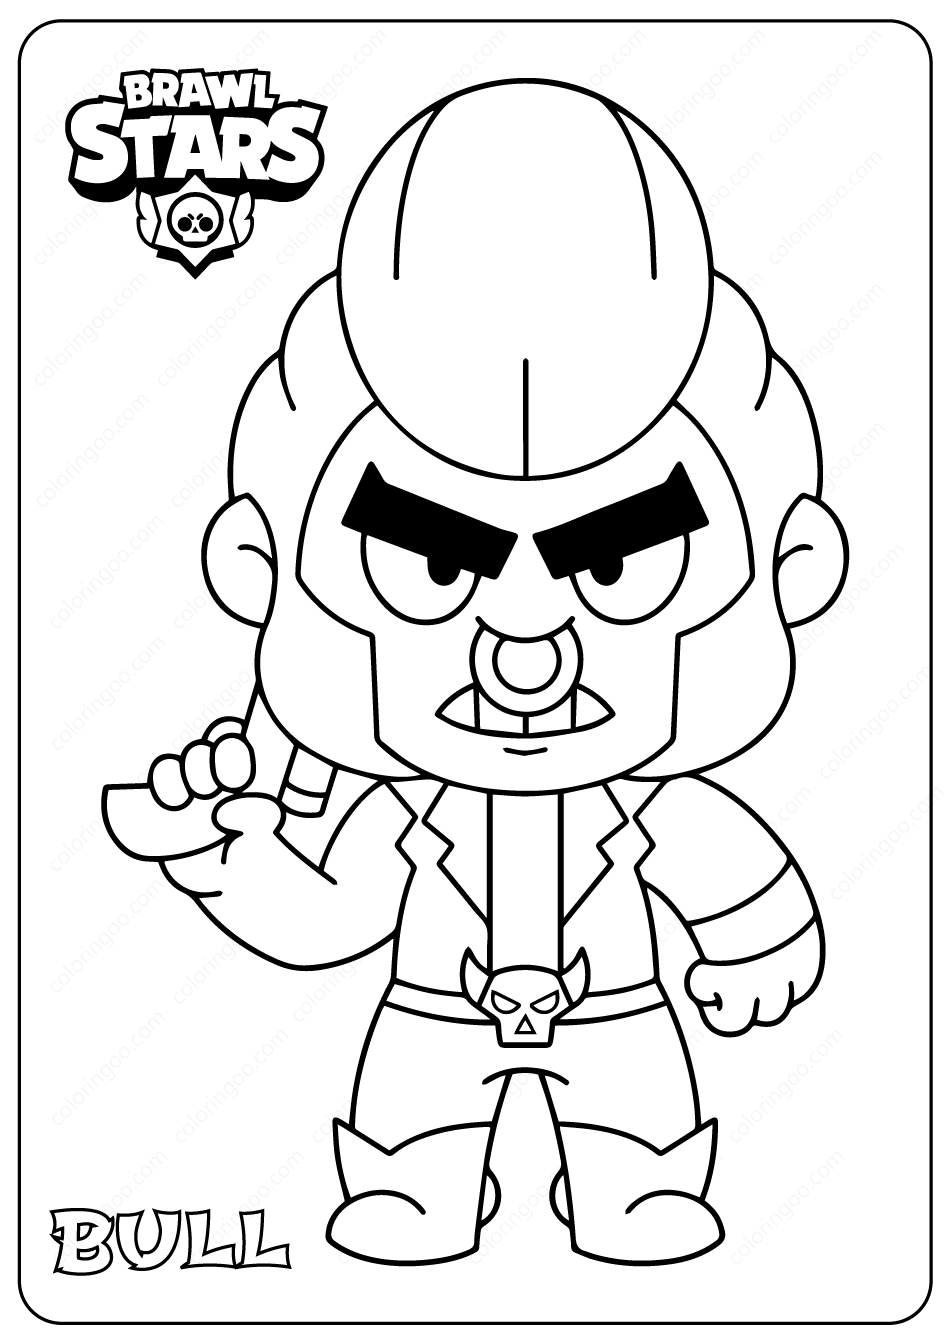 brawl star coloring brawl stars coloring pages print and colorcom brawl coloring star